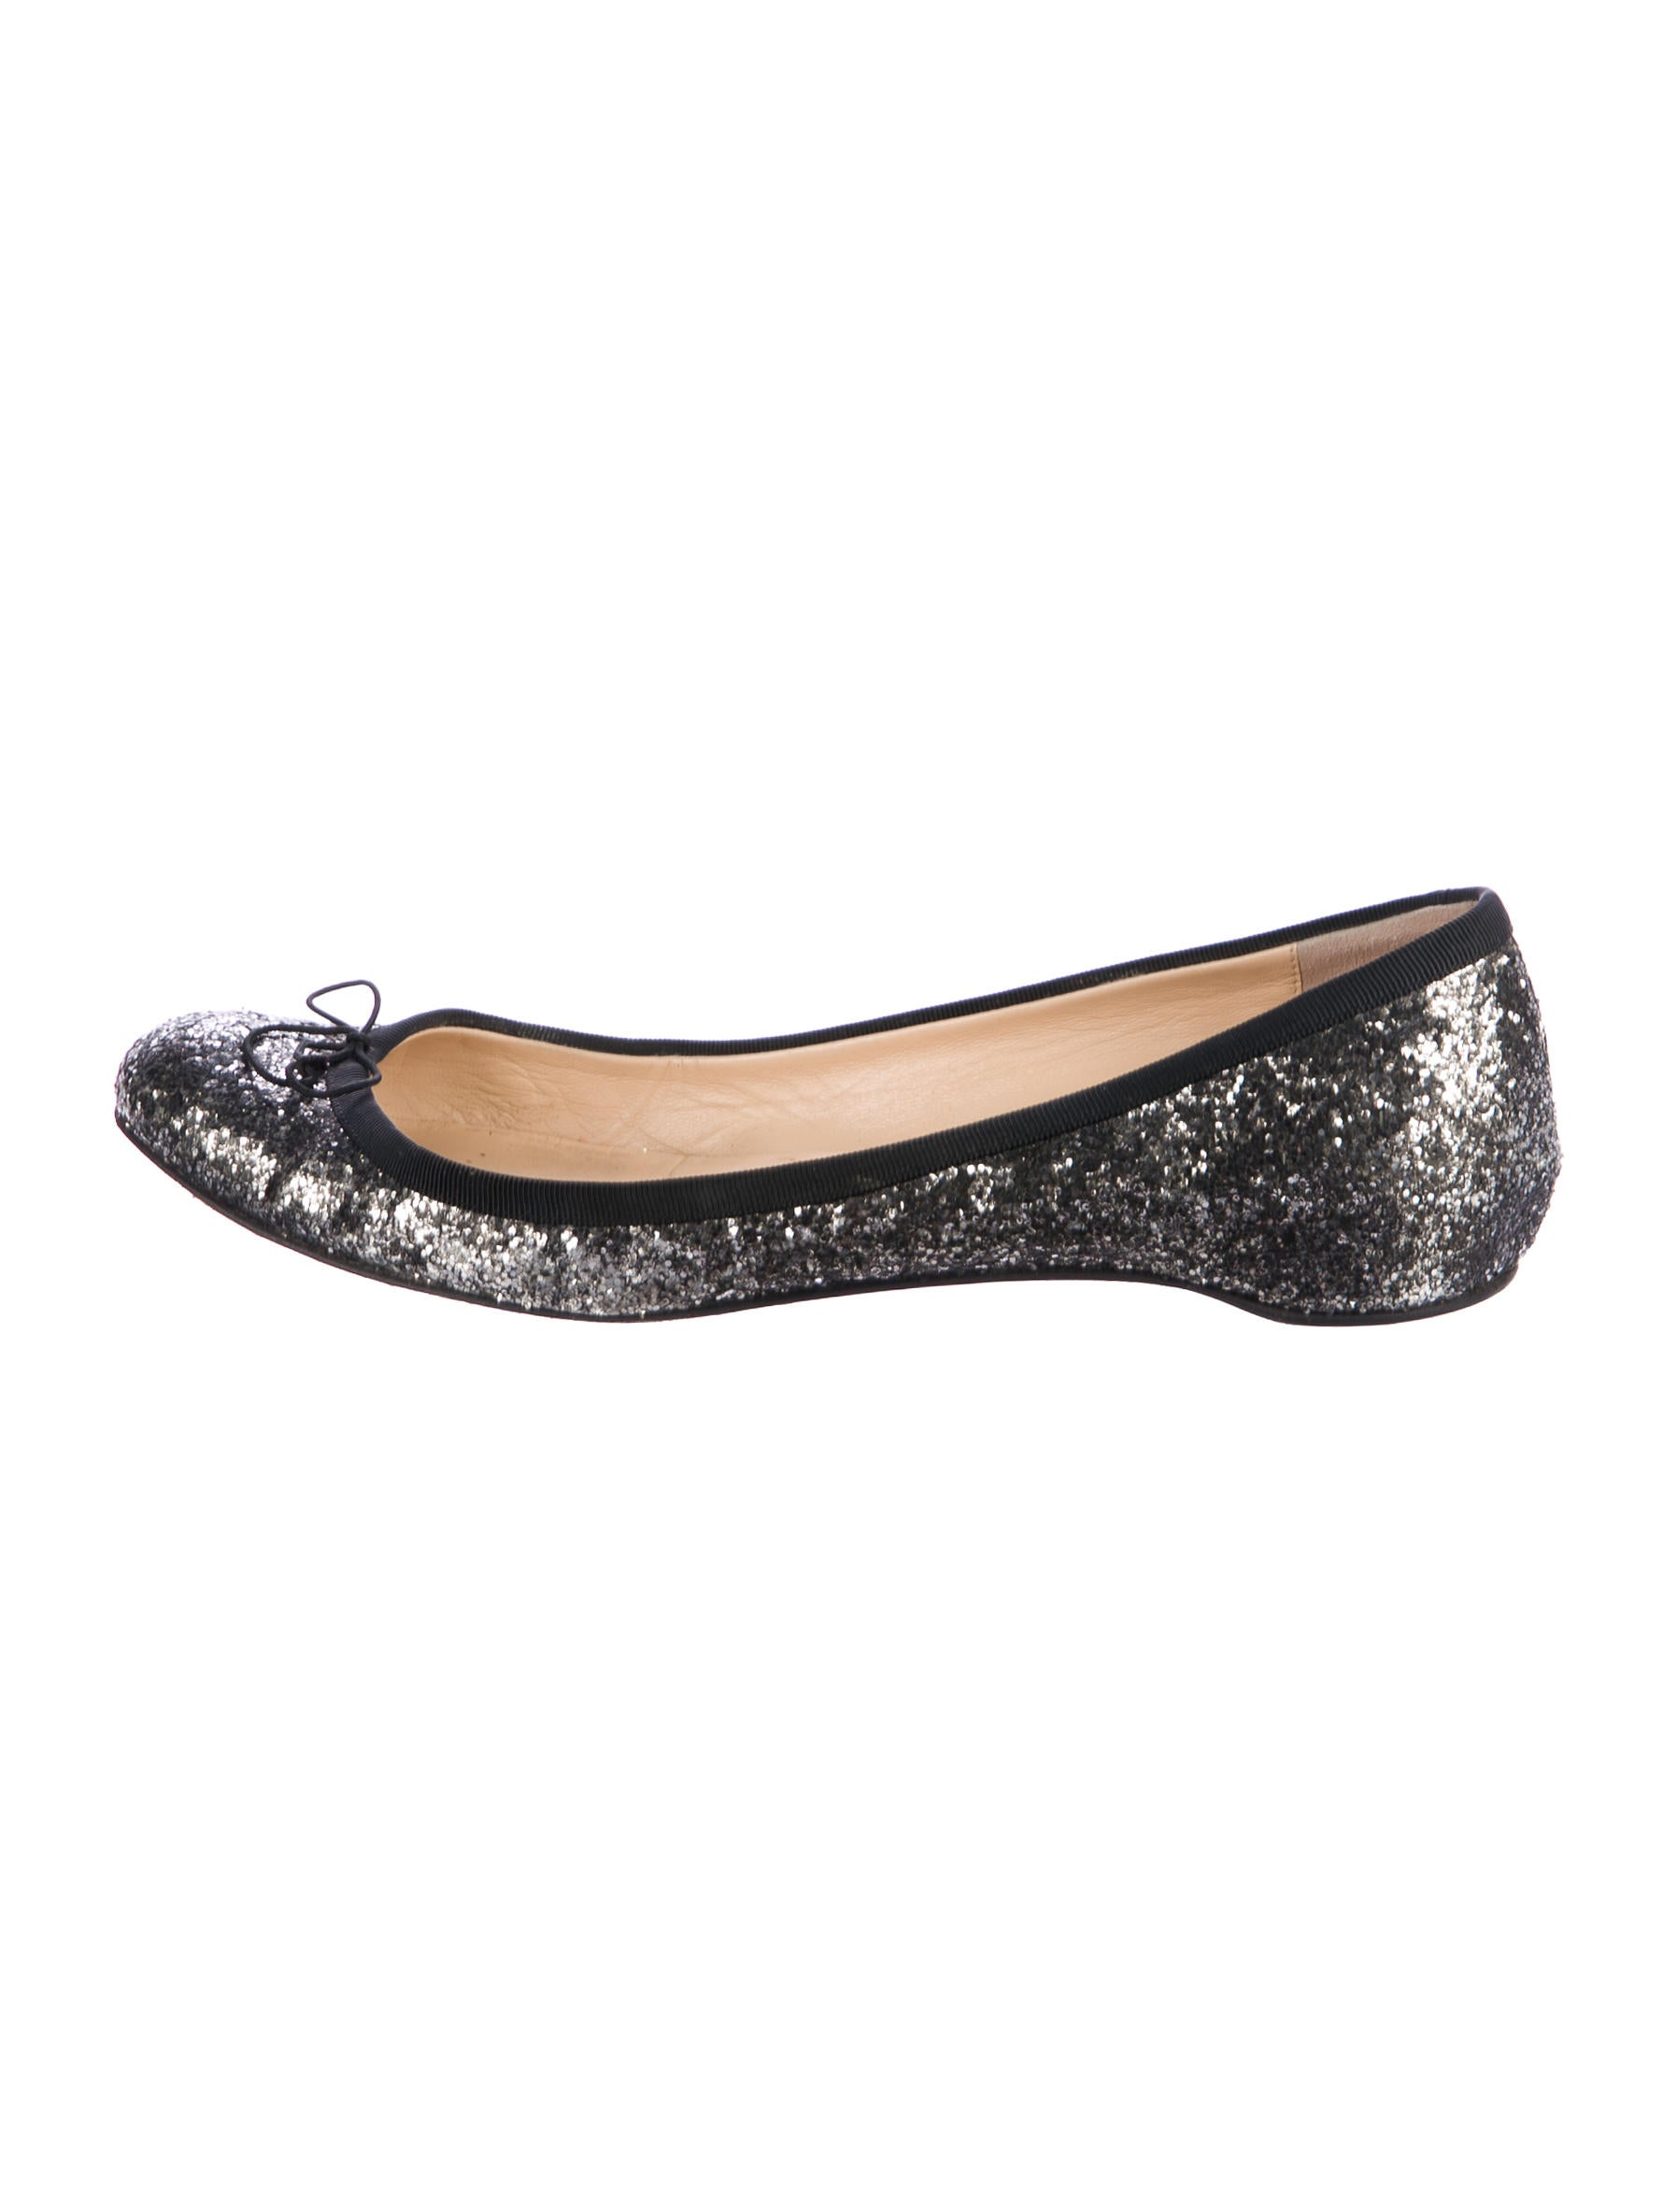 Walk in comfort in these classic casual slip on ballet flats, featuring a pointed toe, contrast stitching, a slightly padded thick er sole for extra comfort, and an approximate inch heel. Style fits true to size.